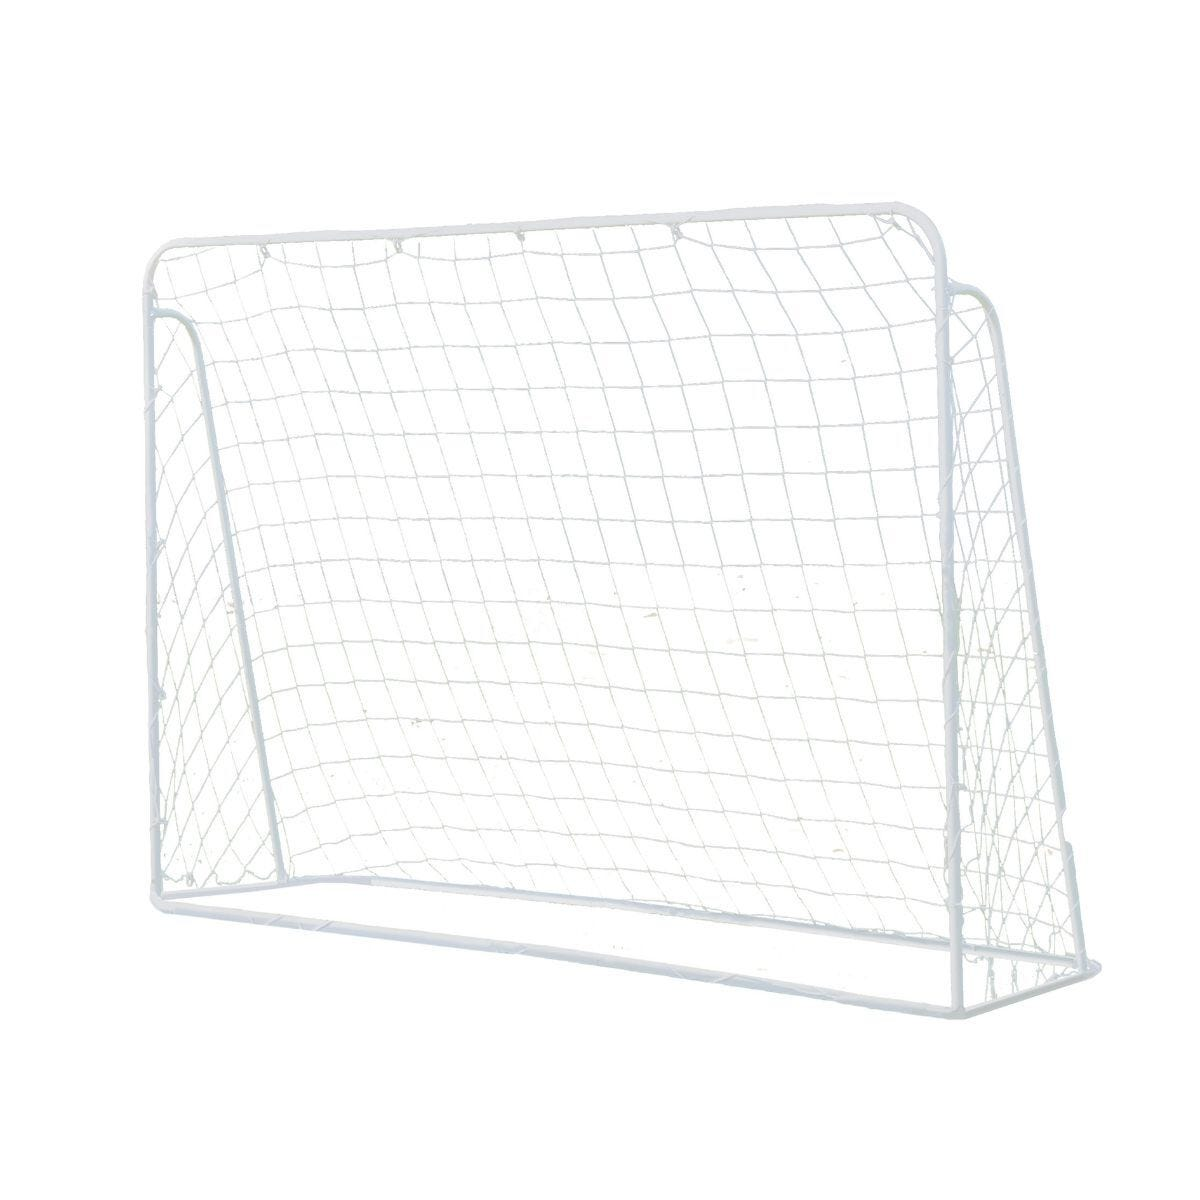 Charles Bentley 7ft x 5ft Football Goal Net